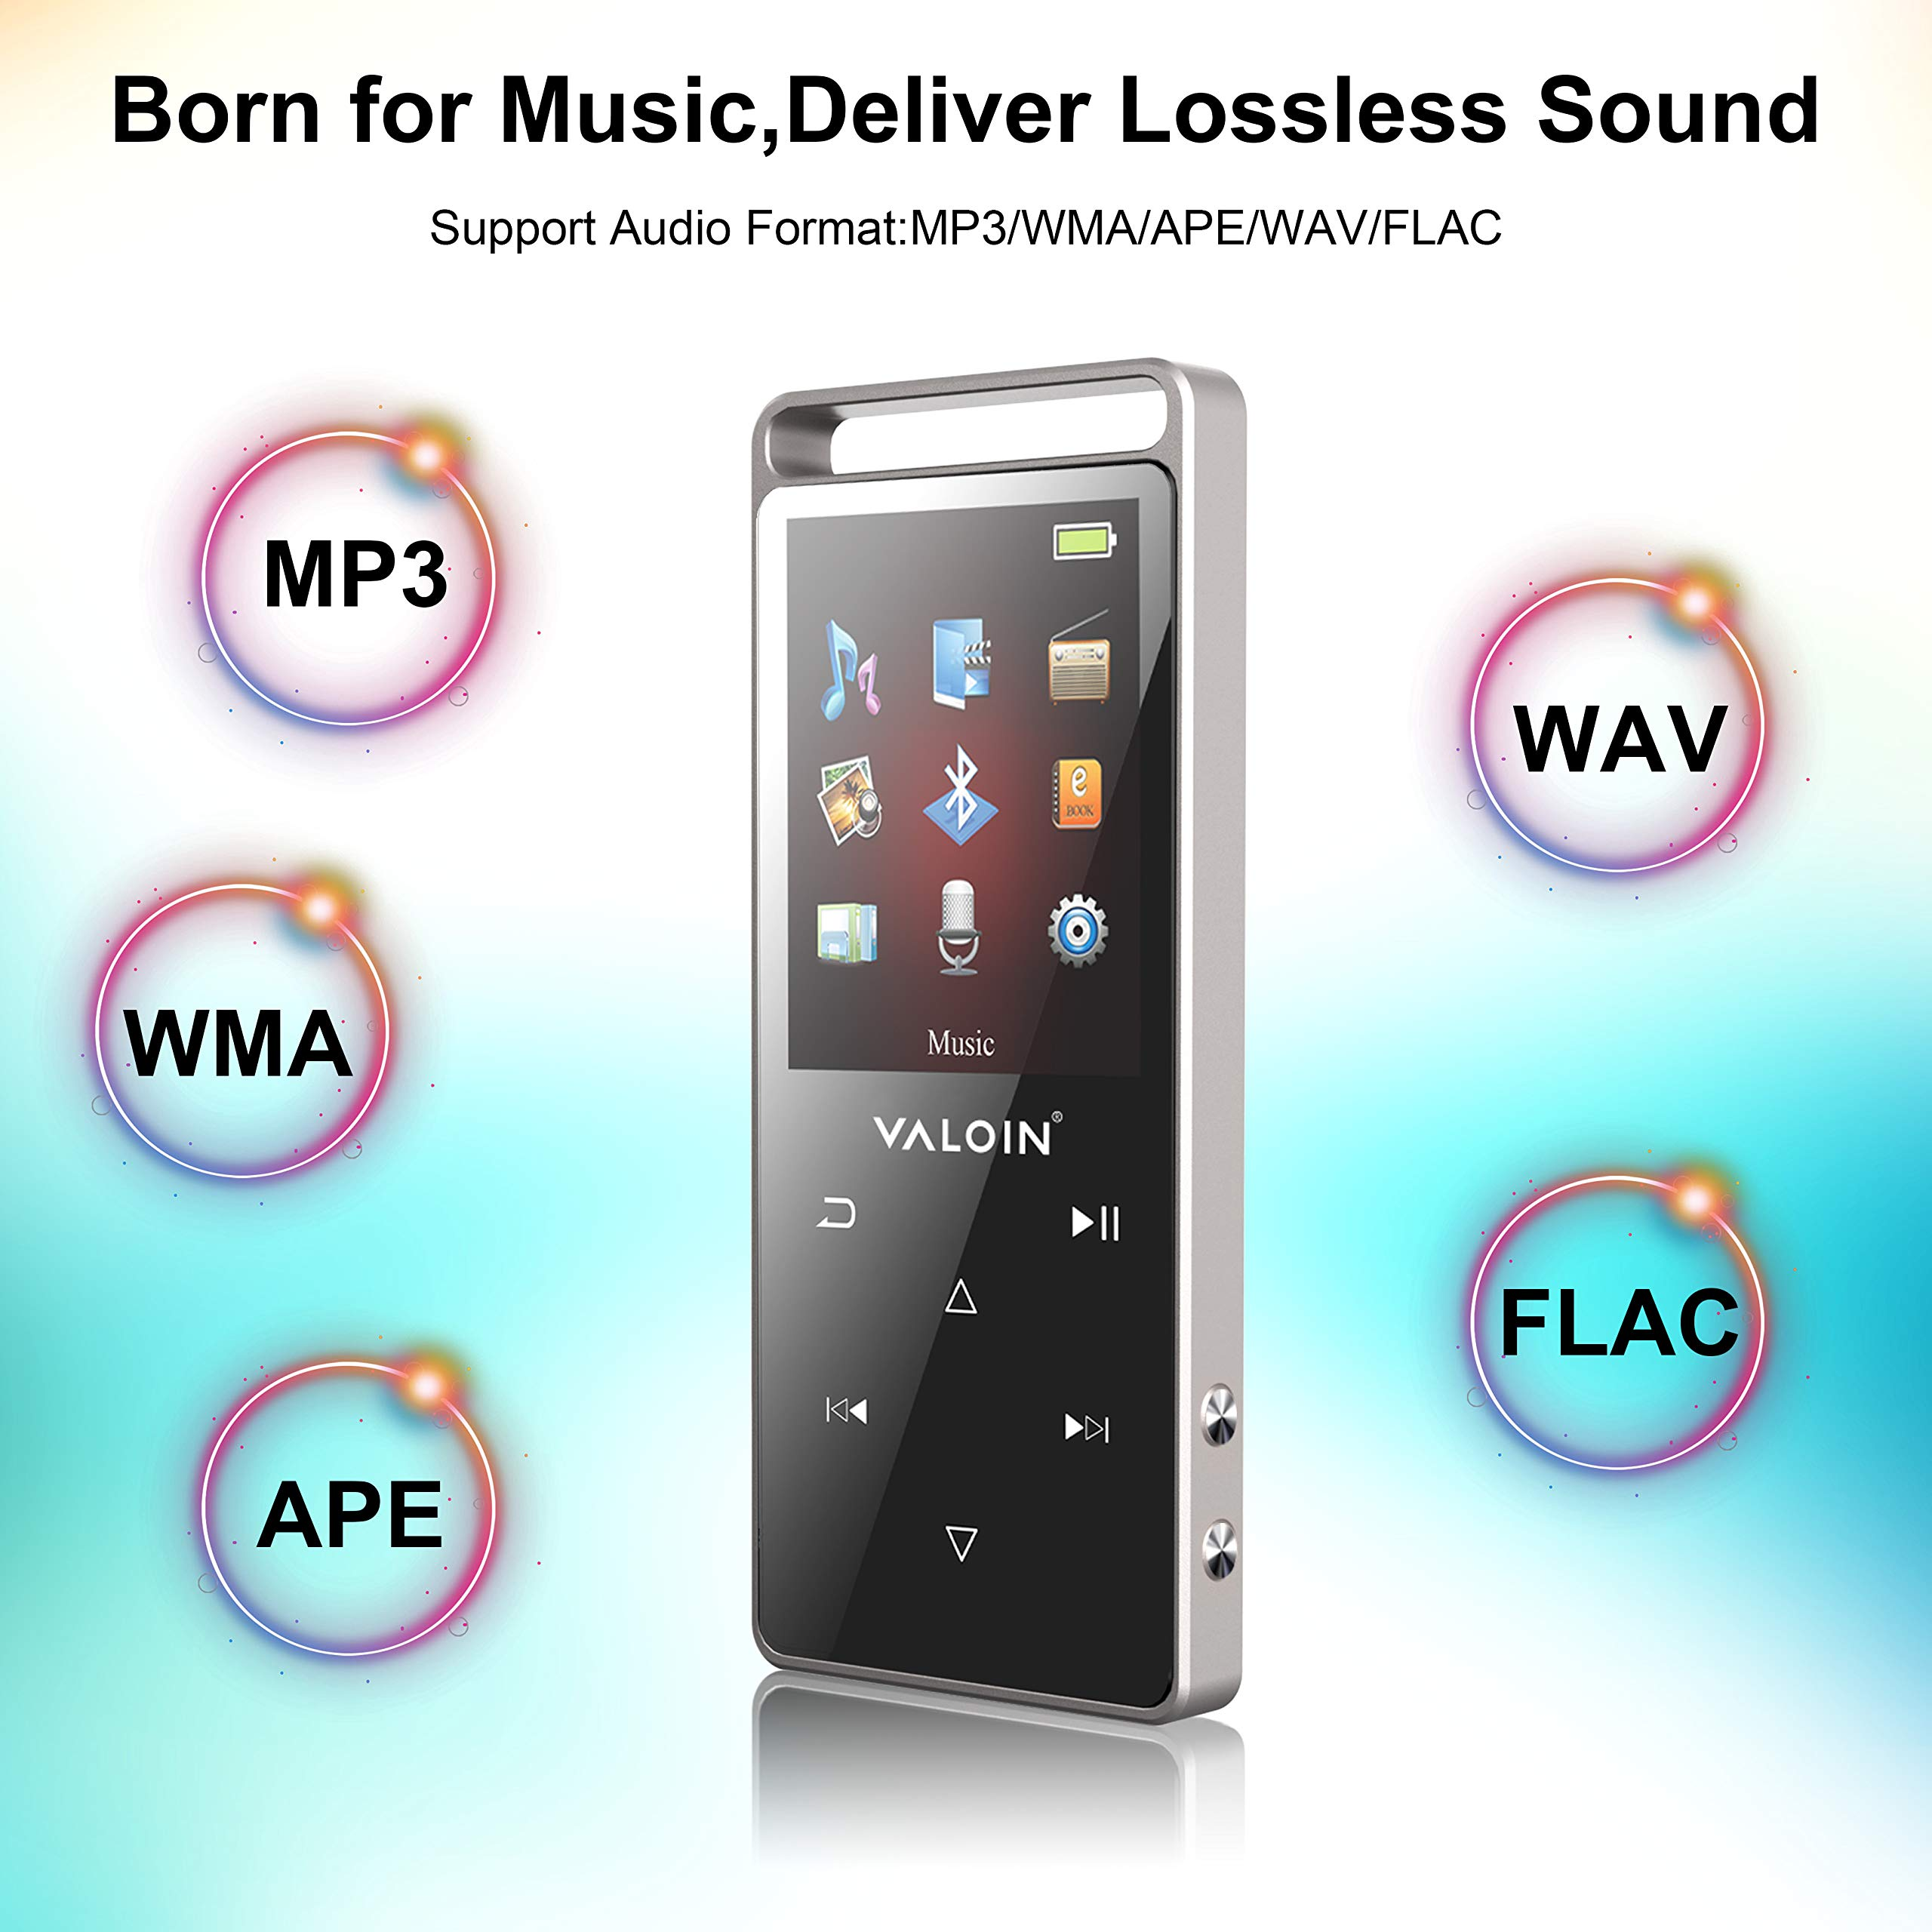 8Gb MP3 Player Advanced Bluetooth 4.0,2019 Lastest Digital Music Player with 1.8 Inch Screen Touch Button Support Video/EBook/FM Radio for Sport by Valoin (Image #6)